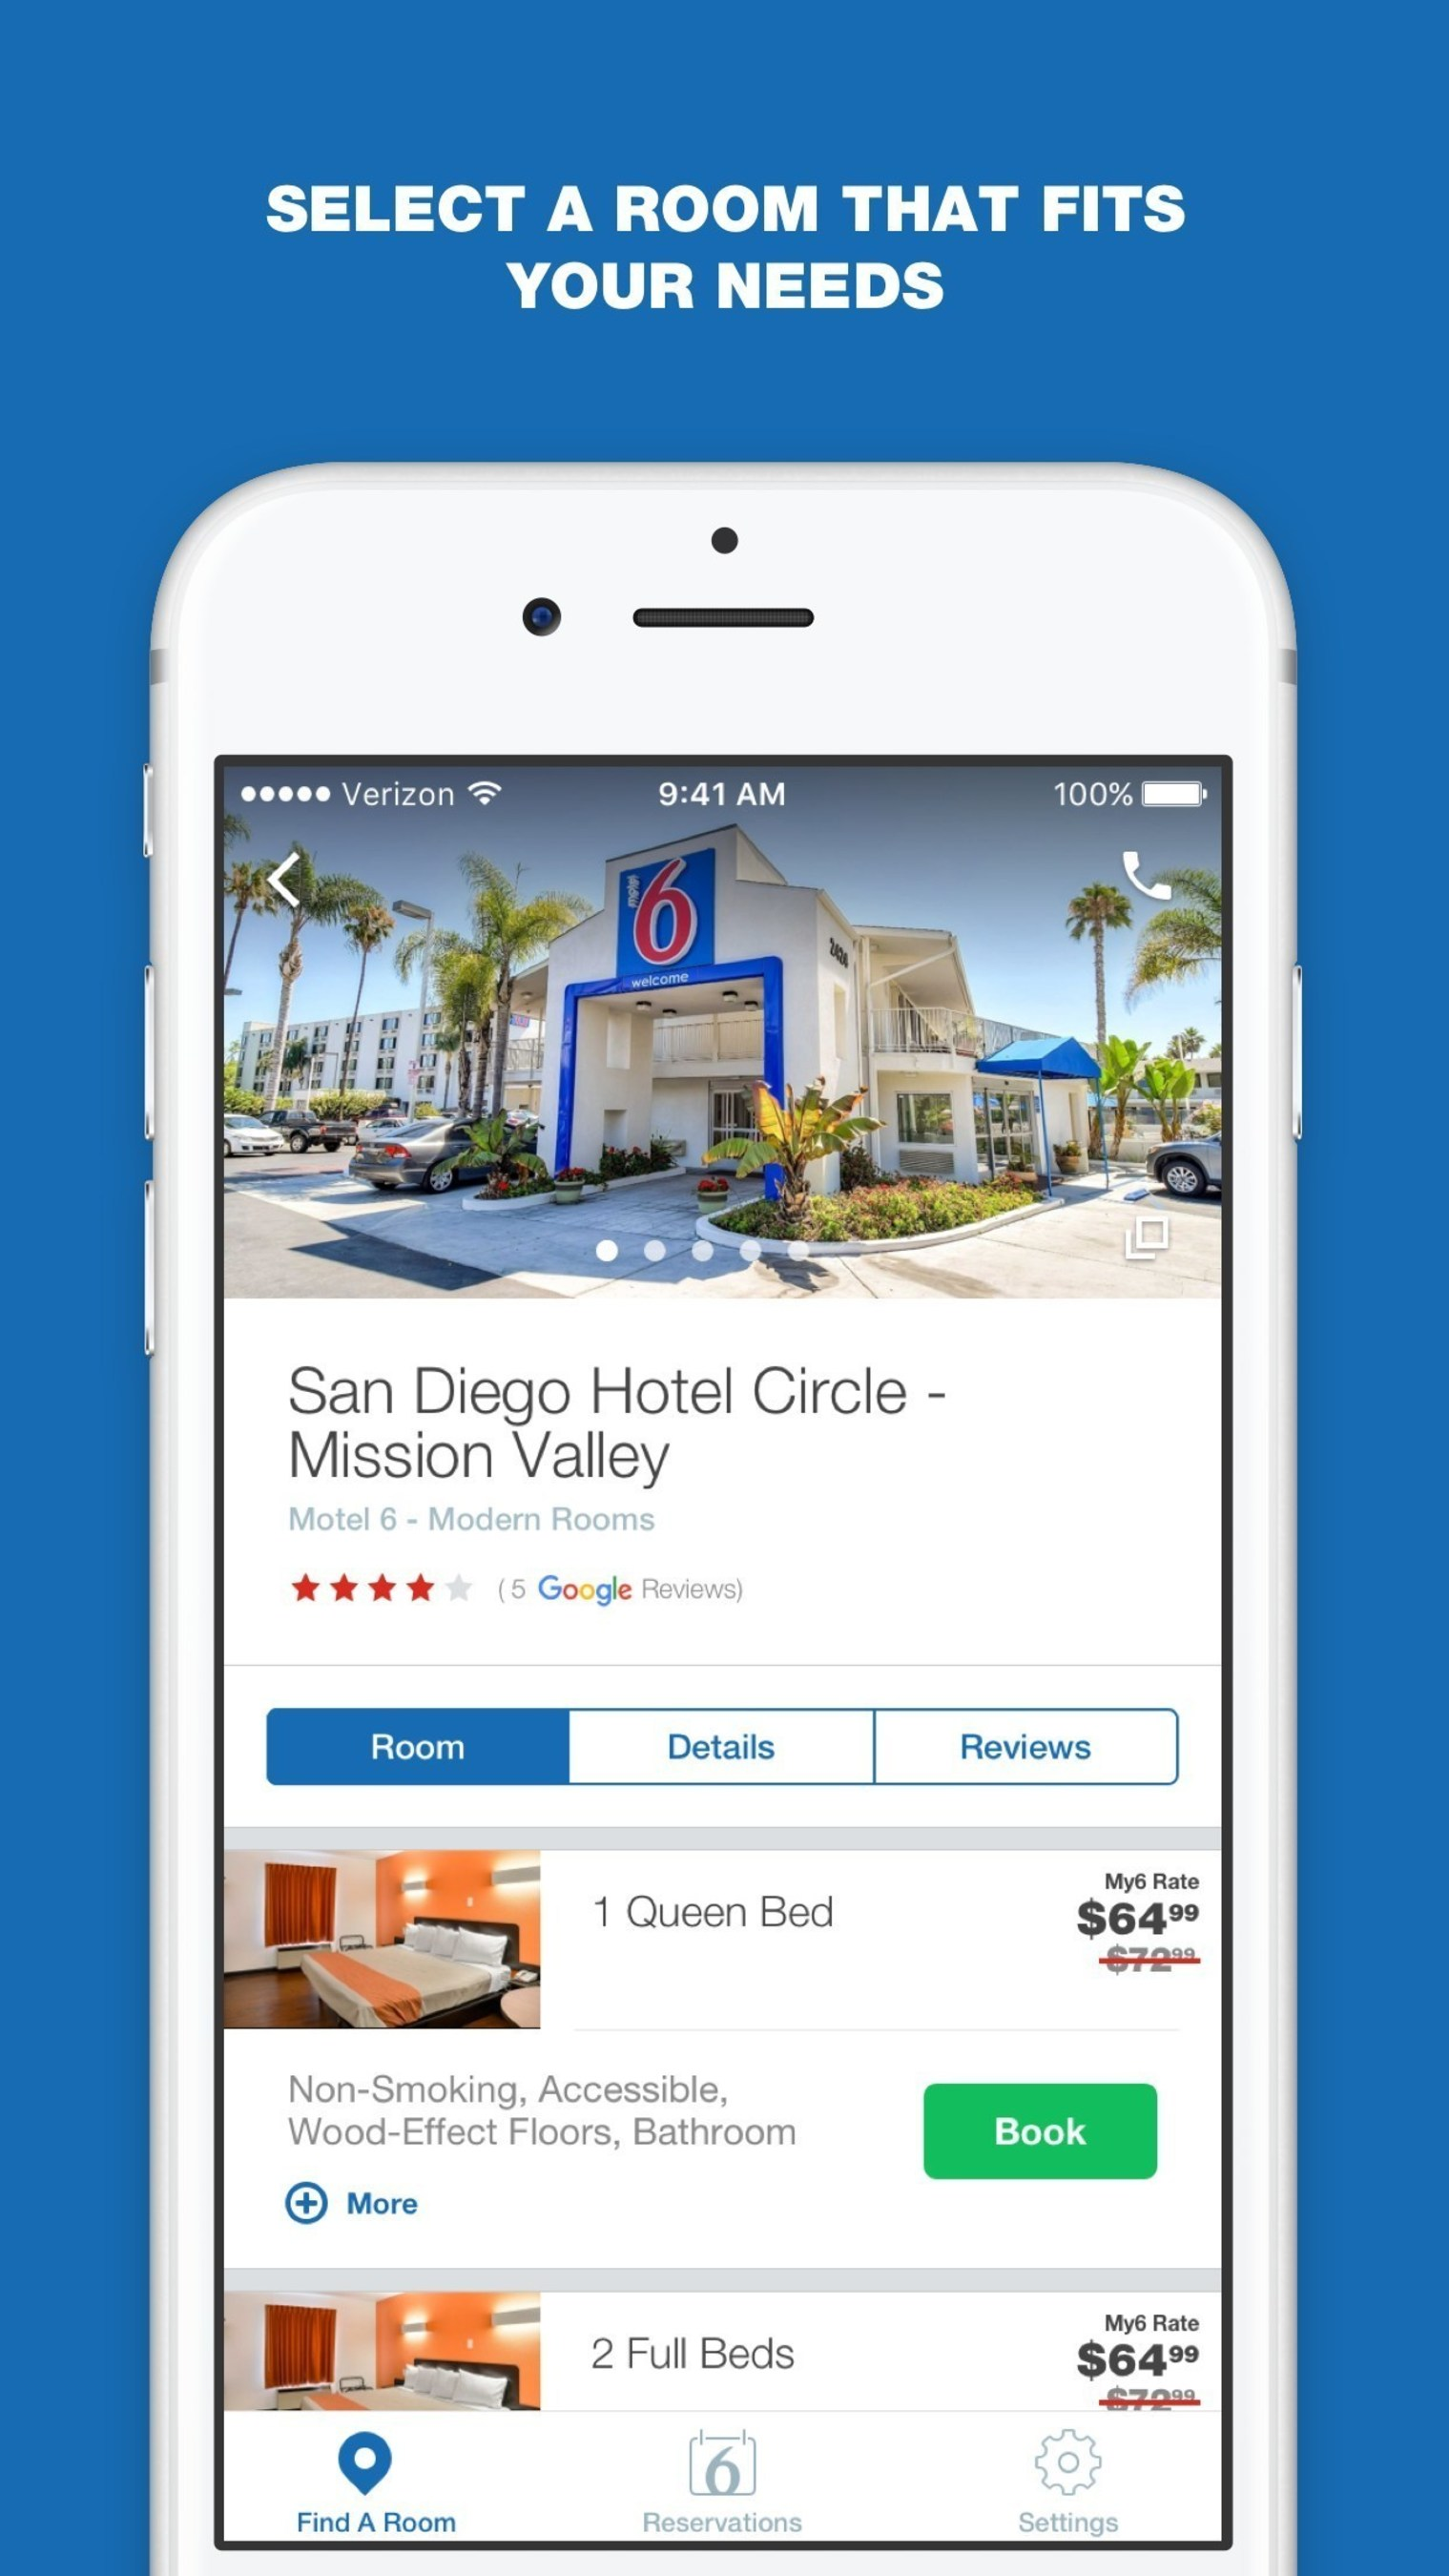 G6 Hospitality Partners with Prolific Interactive to Launch New 'My 6' App with Discount Promotion